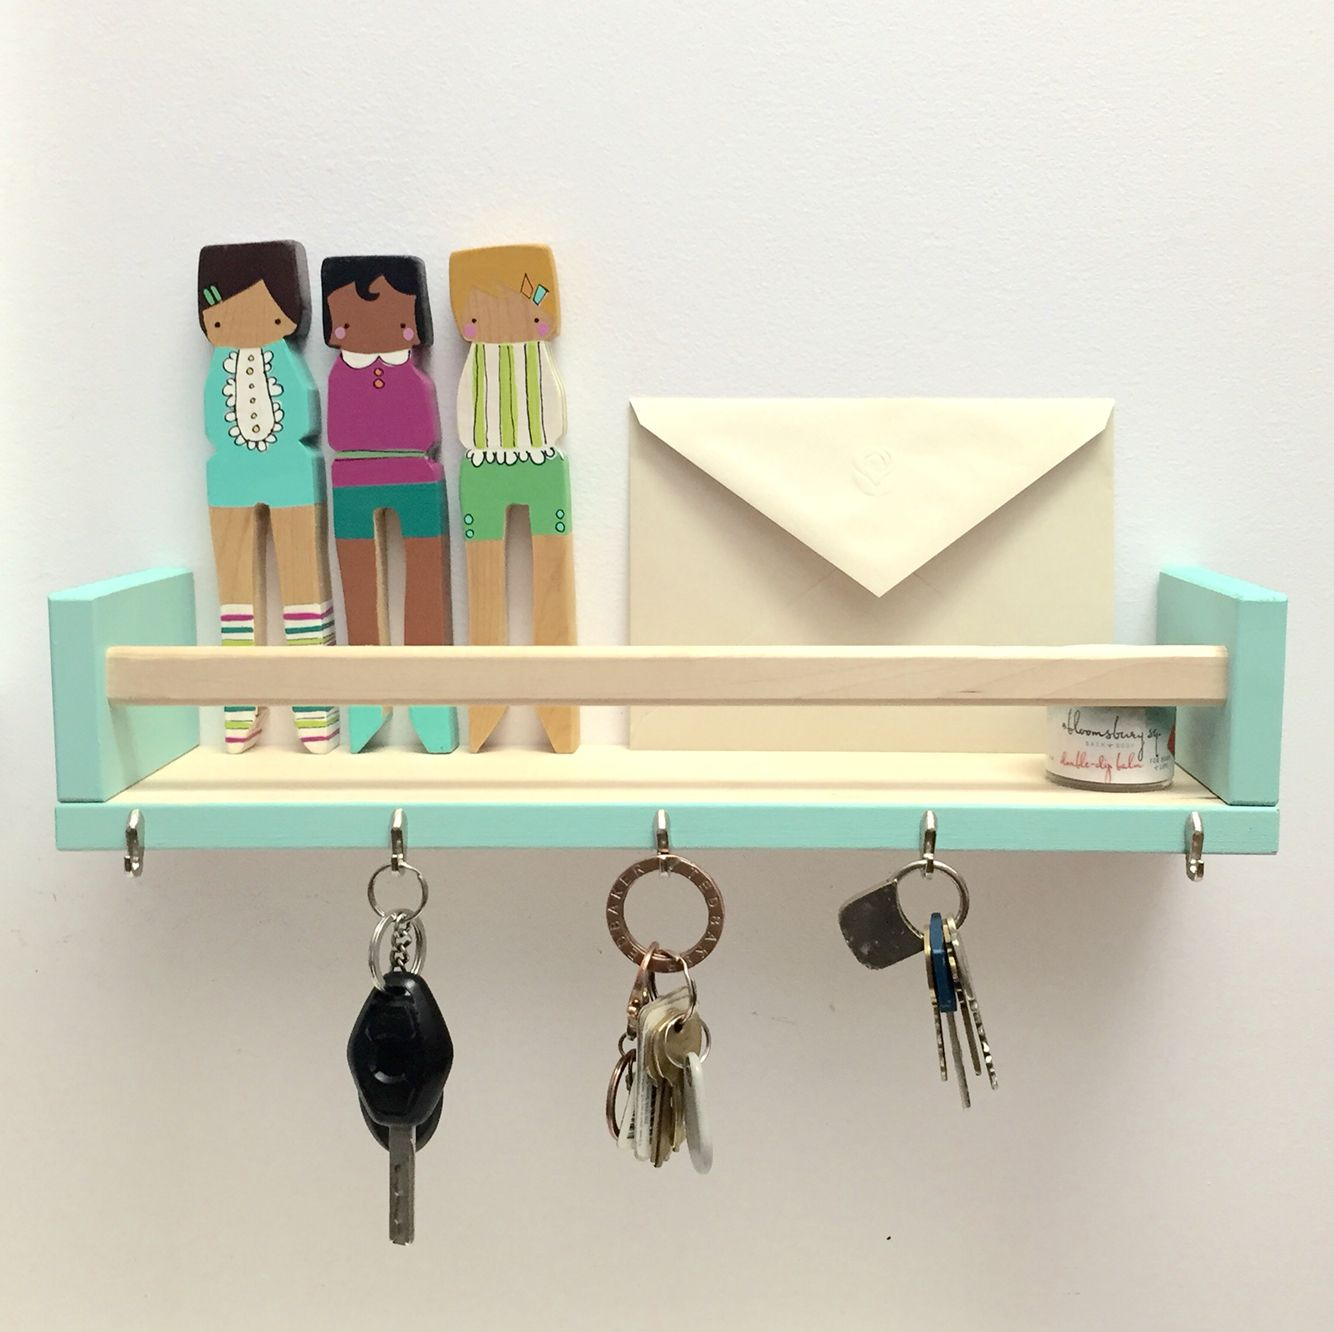 Diy key letter holder using bekvam spice rack from ikea robin 39 s egg for the home - Portachiavi da parete ikea ...